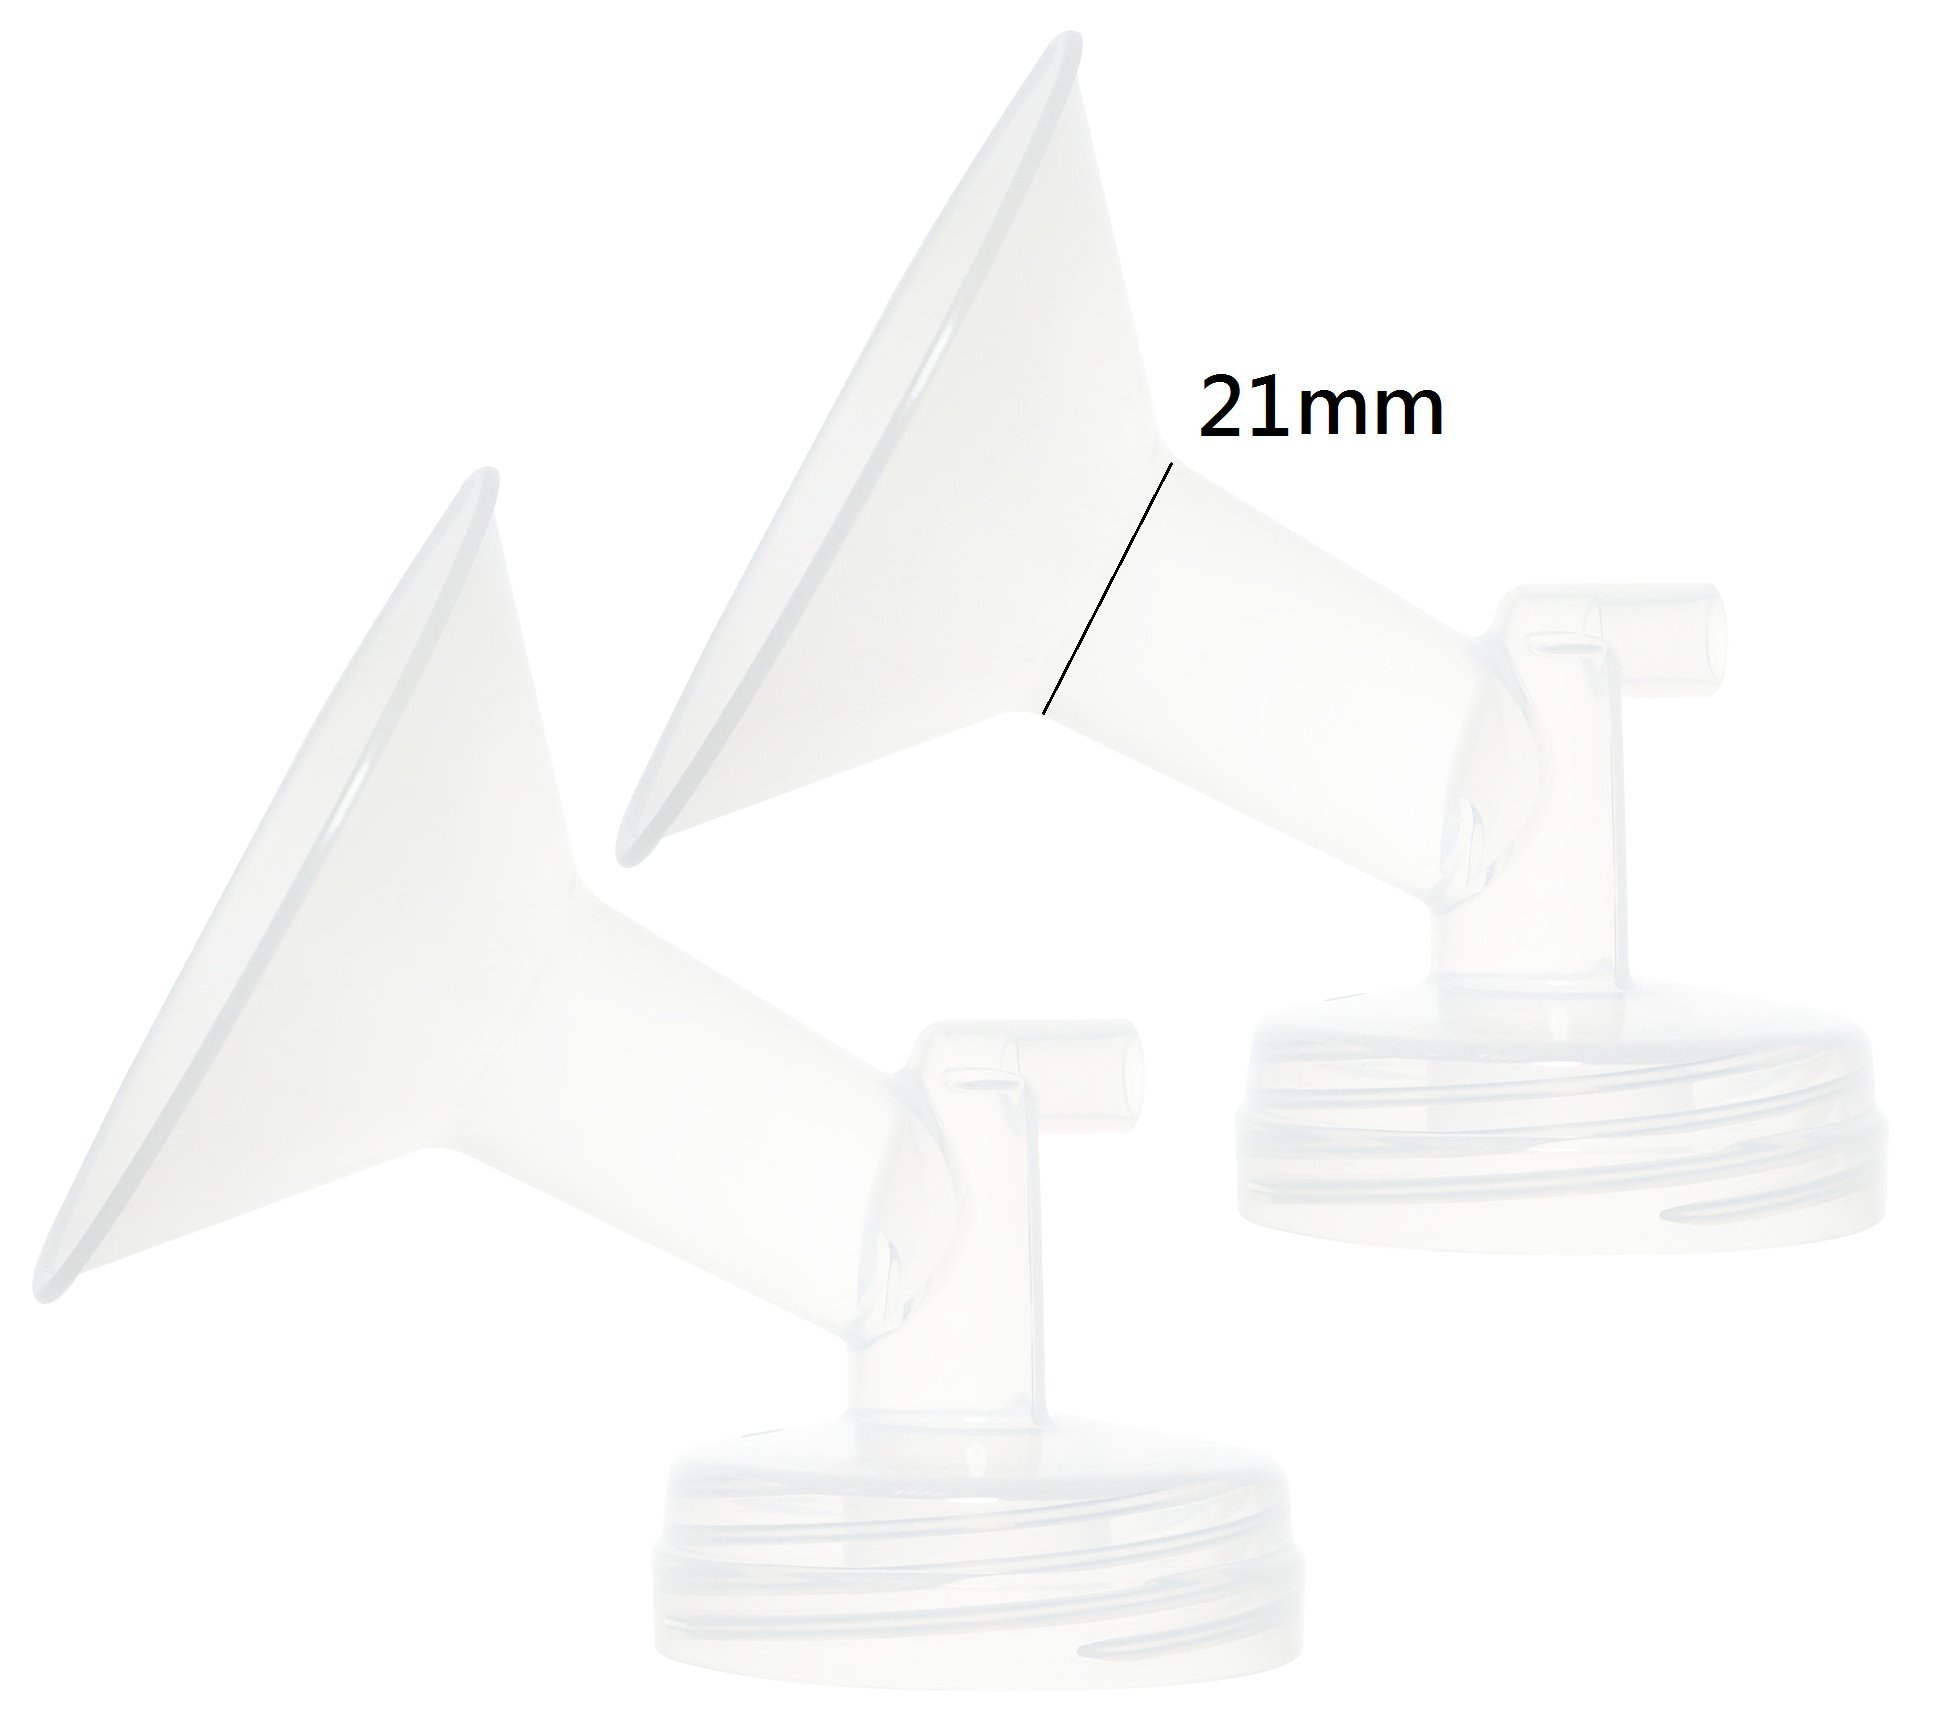 Nenesupply 21mm Flange for Spectra S2 Spectra S1 Spectra 9 Plus Breastpump. Made By Nenesupply. Not Original Spectra Pump Parts Not Original Spectra S2 Accessories Not Original Spectra Flange